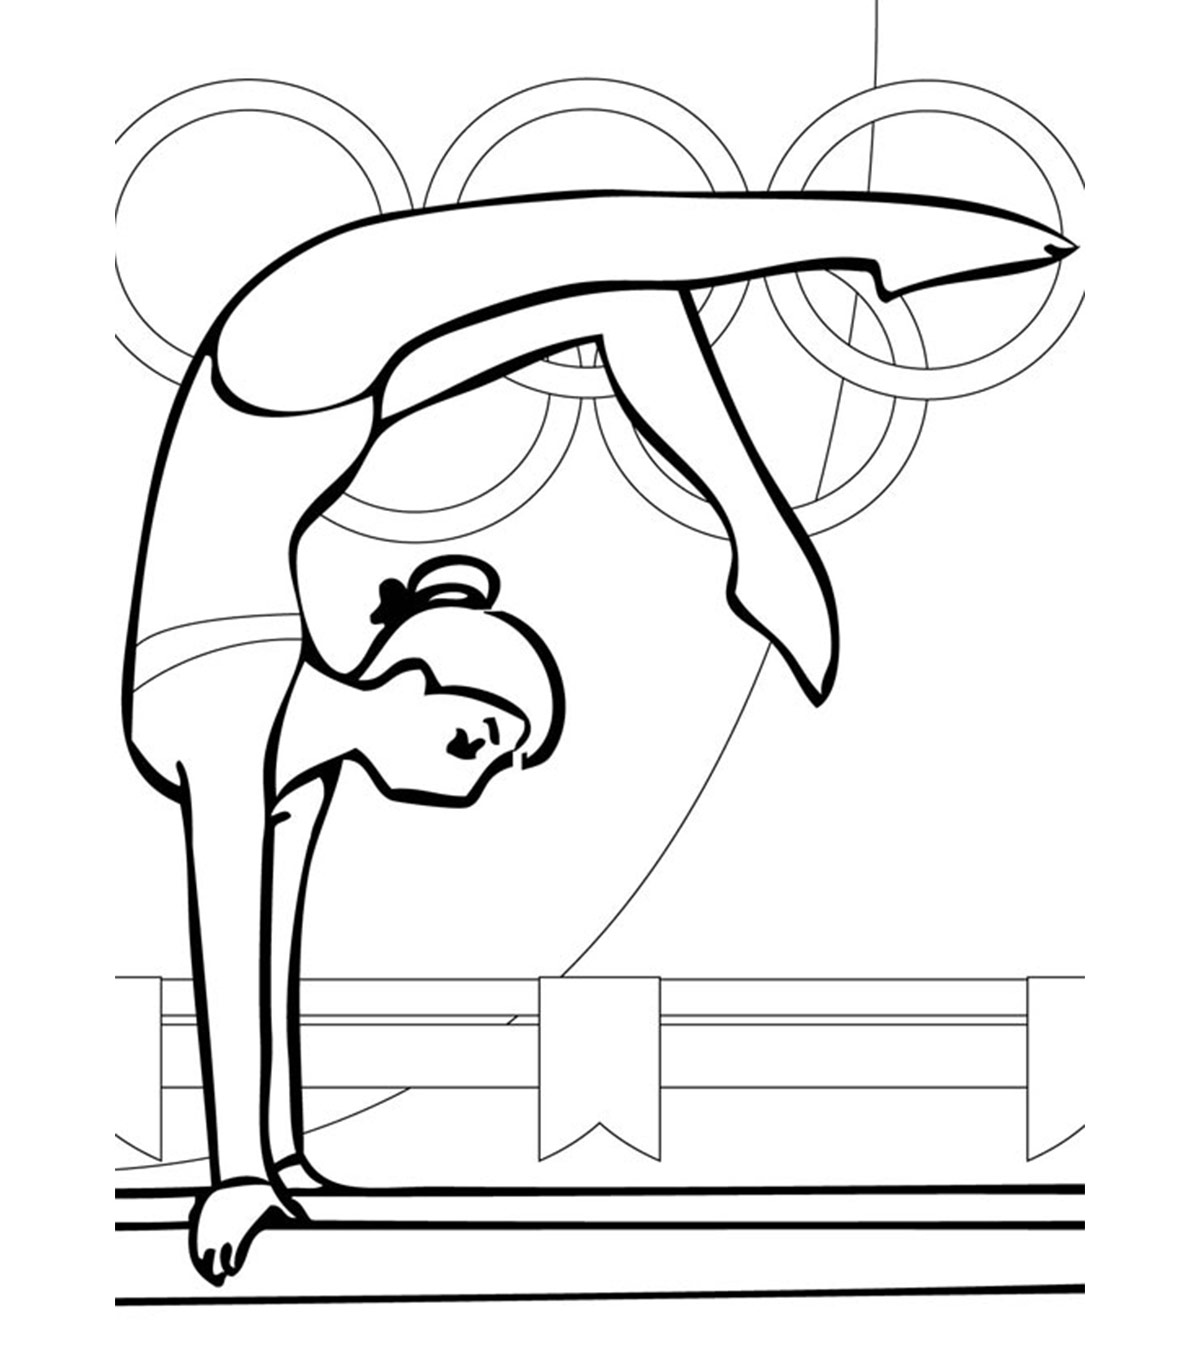 sports pictures to color tennis coloring pages for childrens printable for free to color pictures sports